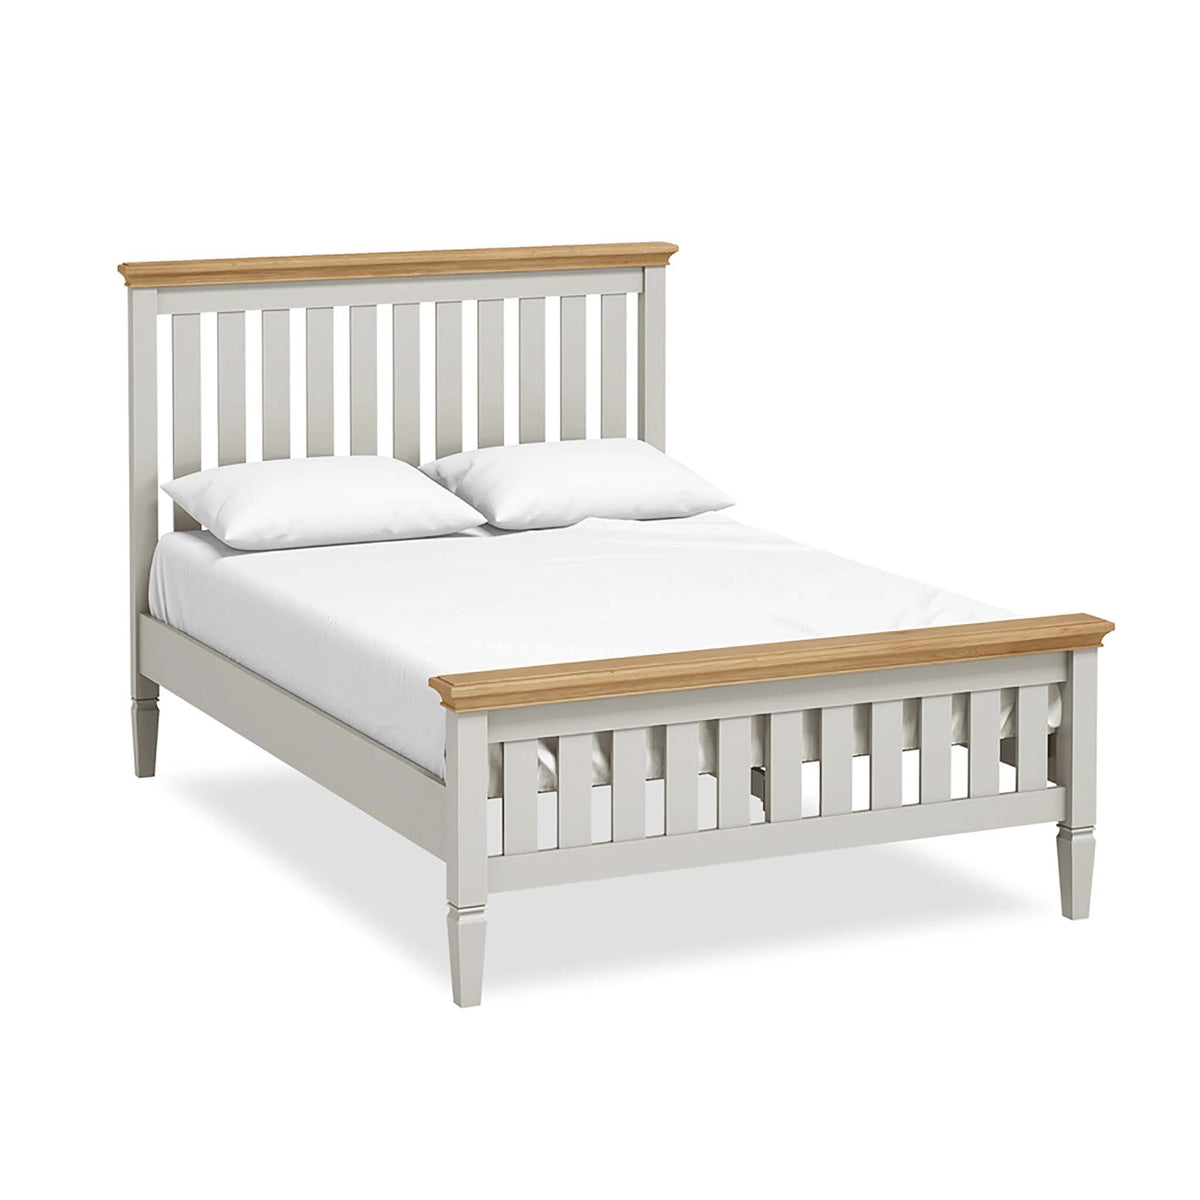 "Normandy Grey 4'6"" Bed Frame by Roseland Furniture"